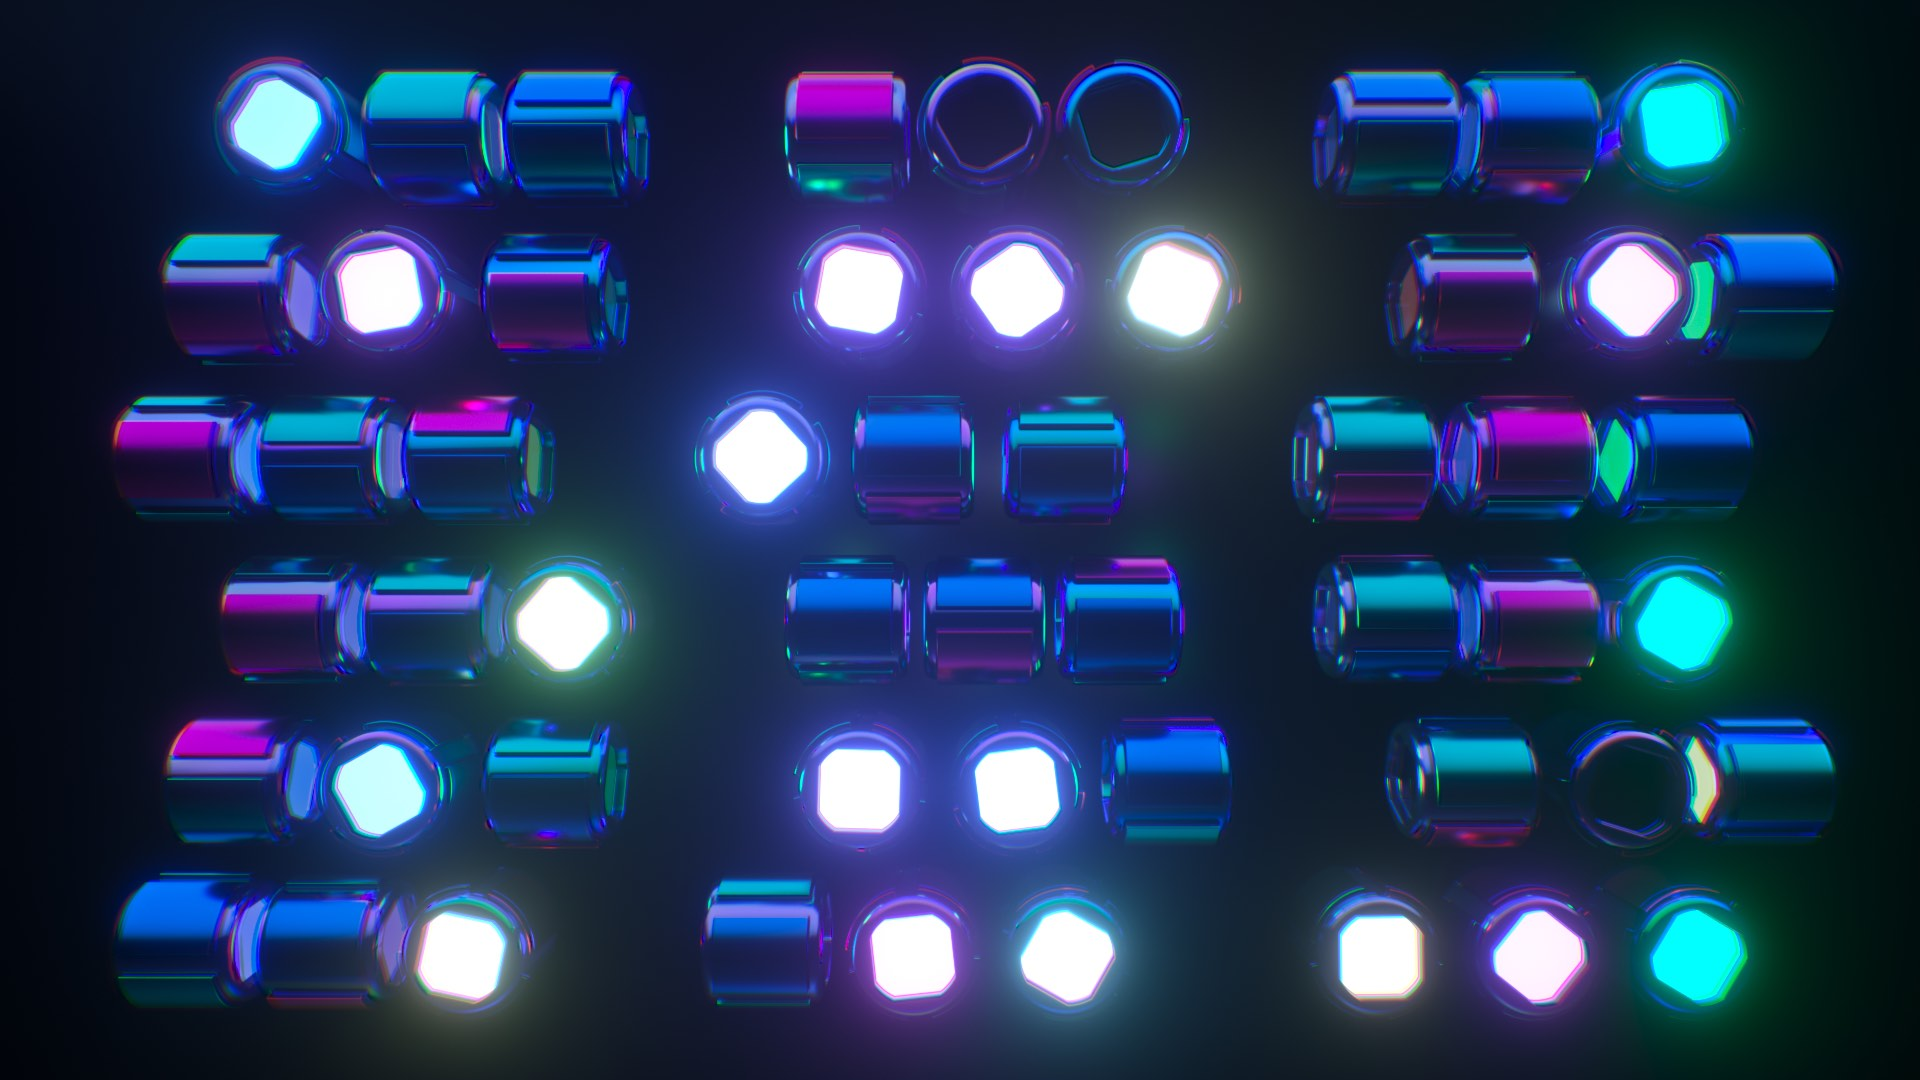 V J Free Vj Loops For Live Visuals Night Beams Hd